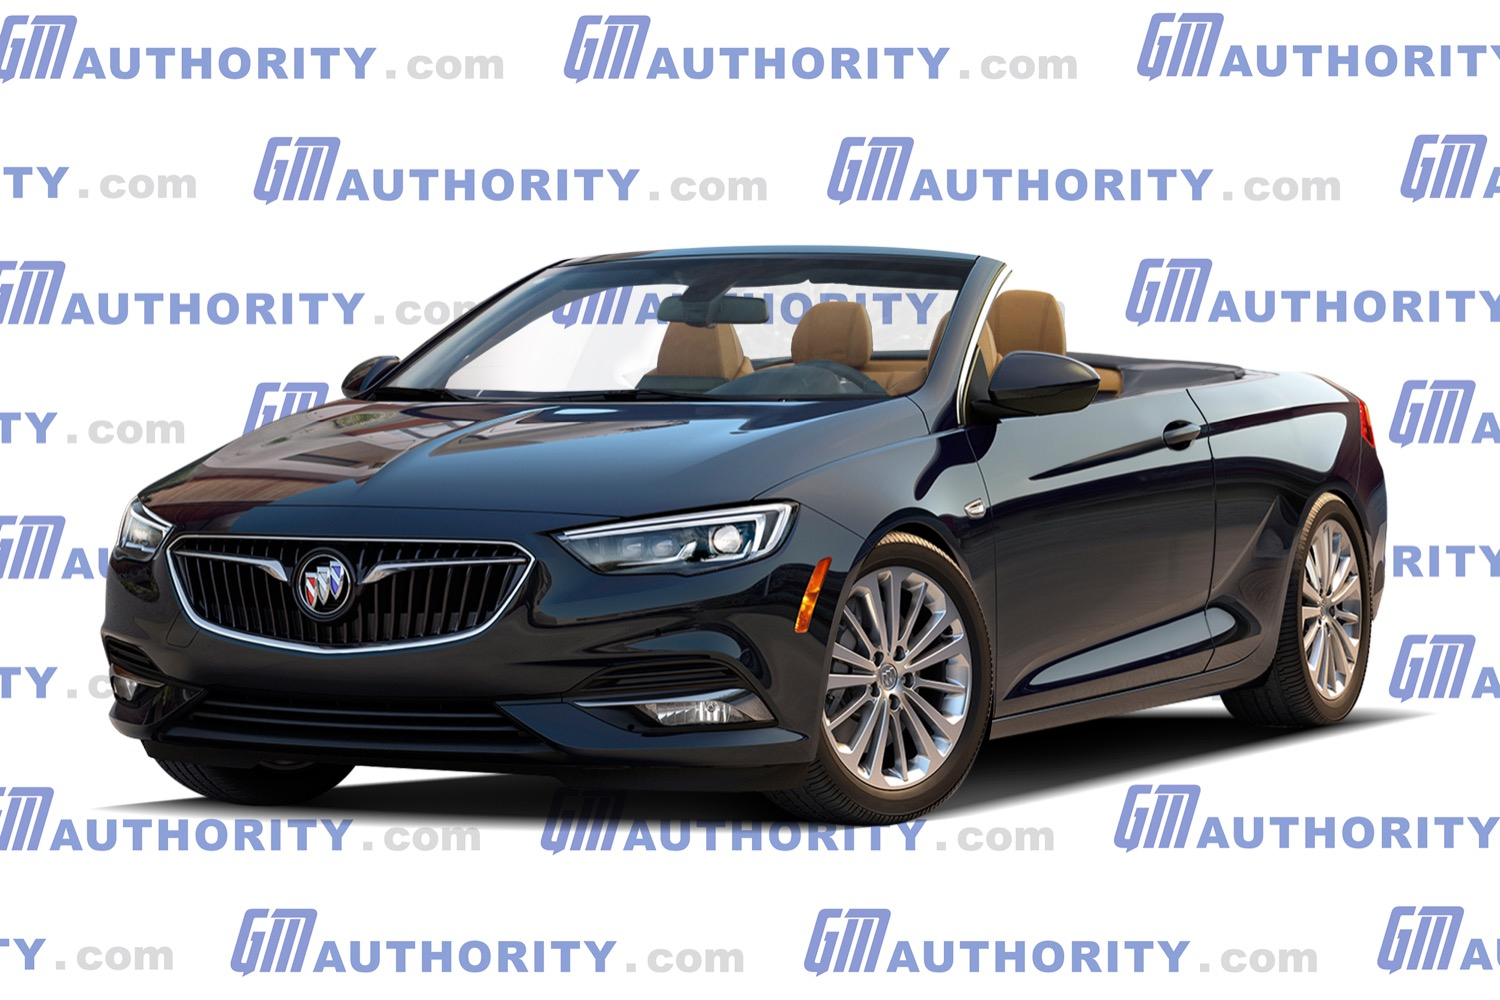 Buick Regal Convertible Rendered | Gm Authority New 2022 Buick Regal Images, Price, Performance